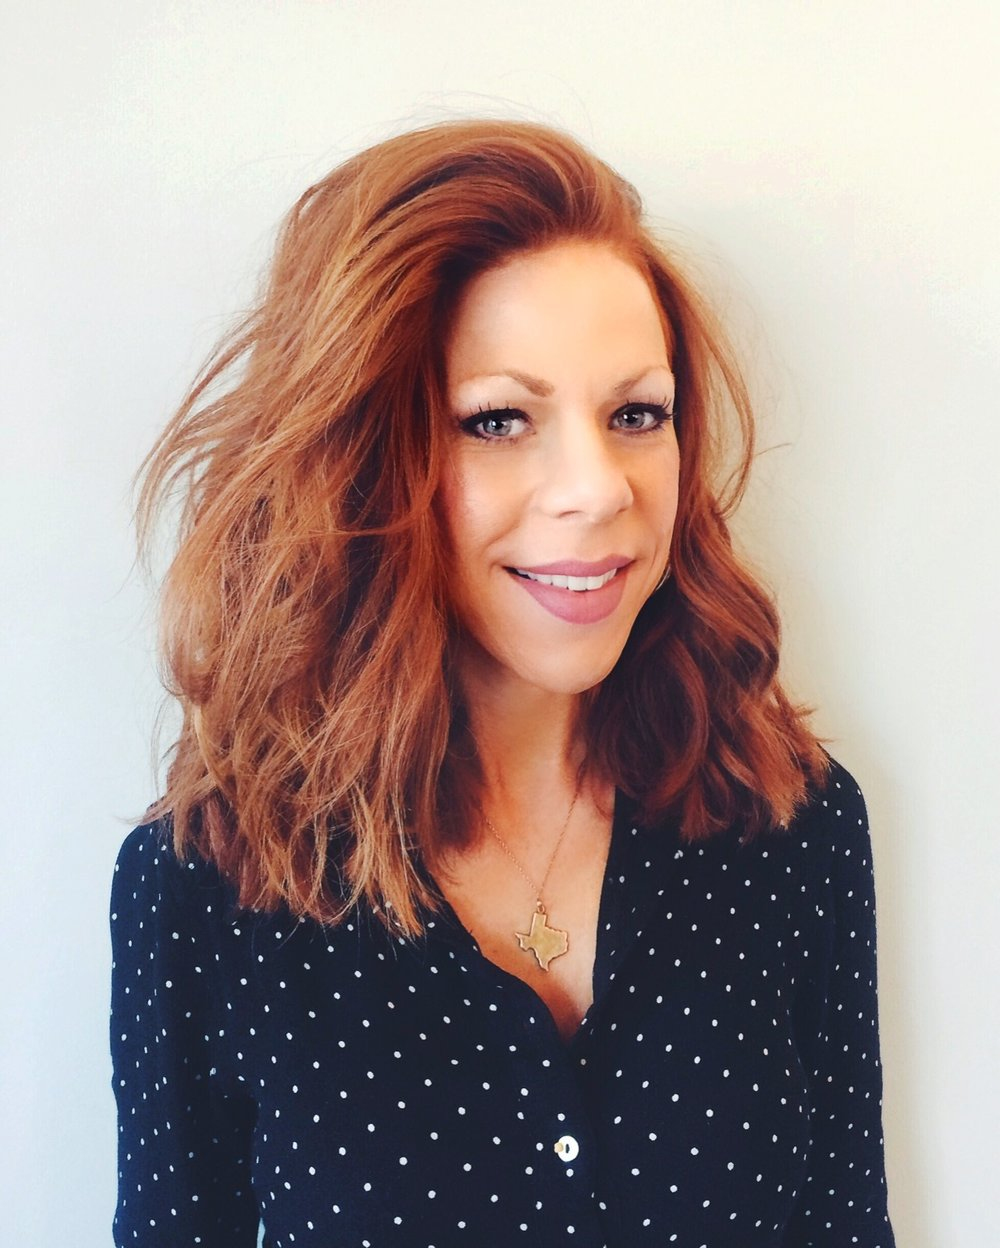 Rachal Robichau  One of our Texan born stylists, Rachal, specializes in big, blonde hair and making her clients feel like her best friend. She was named 'Best Stylist to Spill Your Guts Too' by Austin Monthly Magazine in 2012.